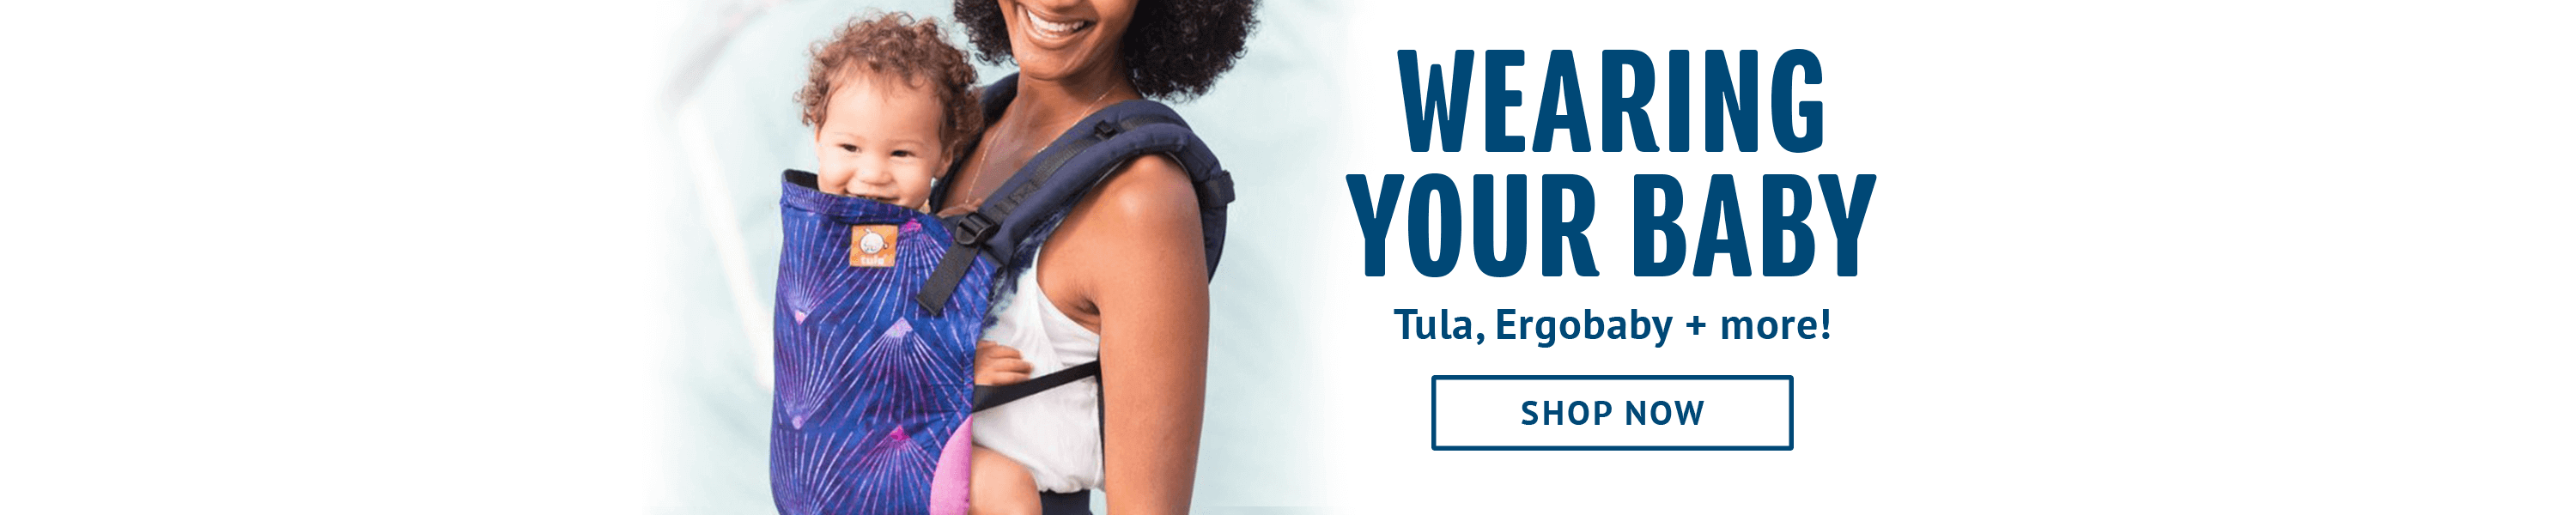 Image of Wearing Your Baby! Tula, Ergobaby and more!